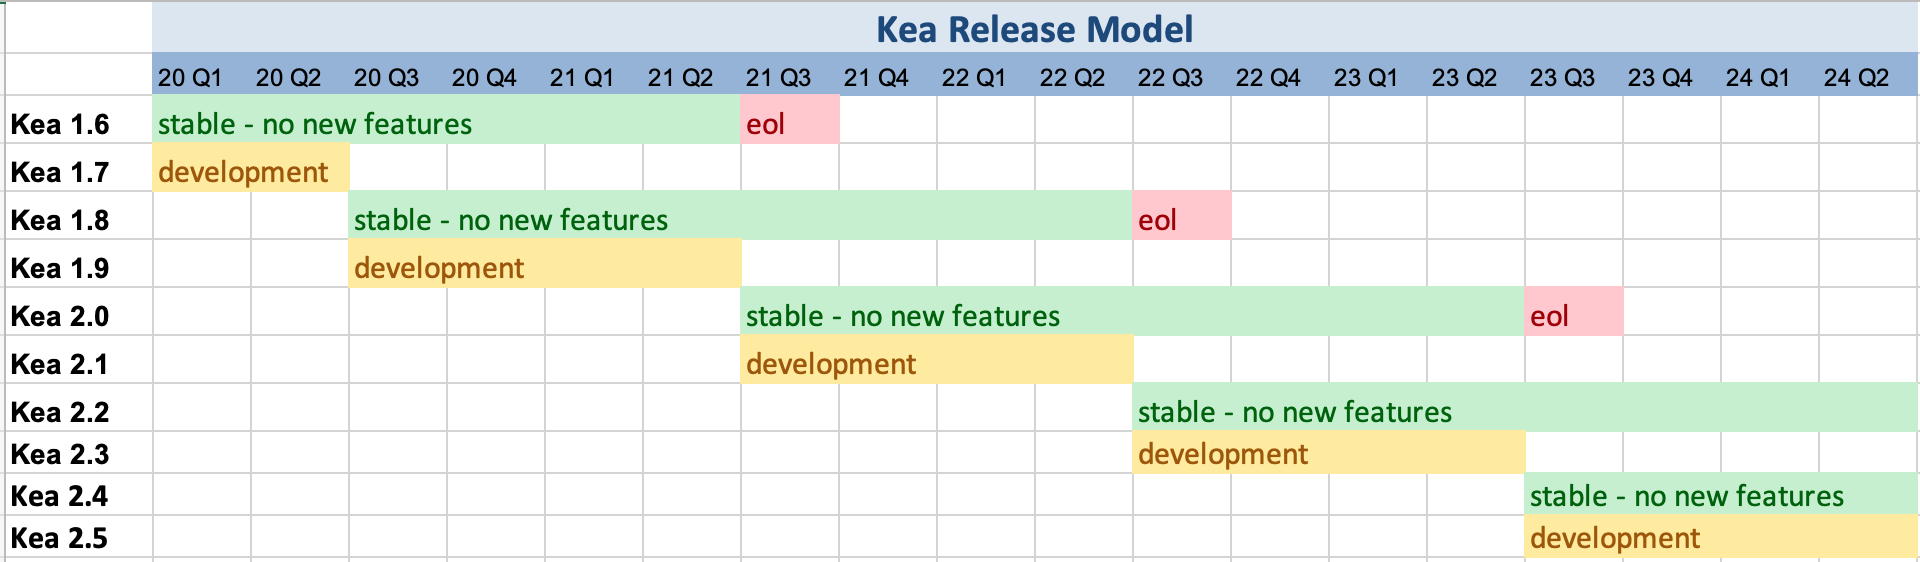 Table of Projected Kea Release Dates